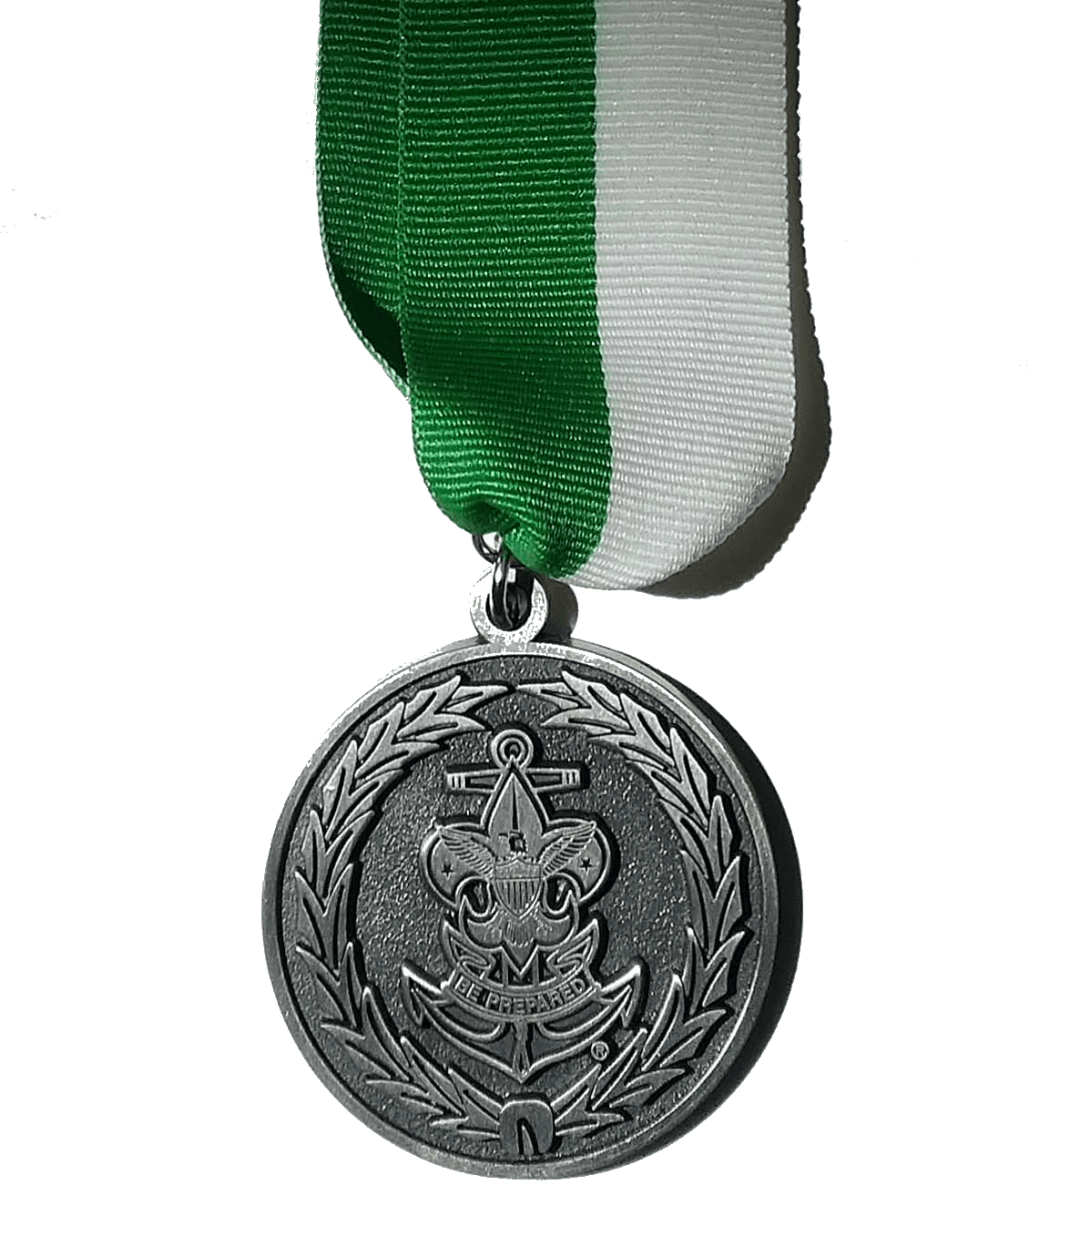 Sea Scout Leadership Award (medal hanging from a green and white ribbon)